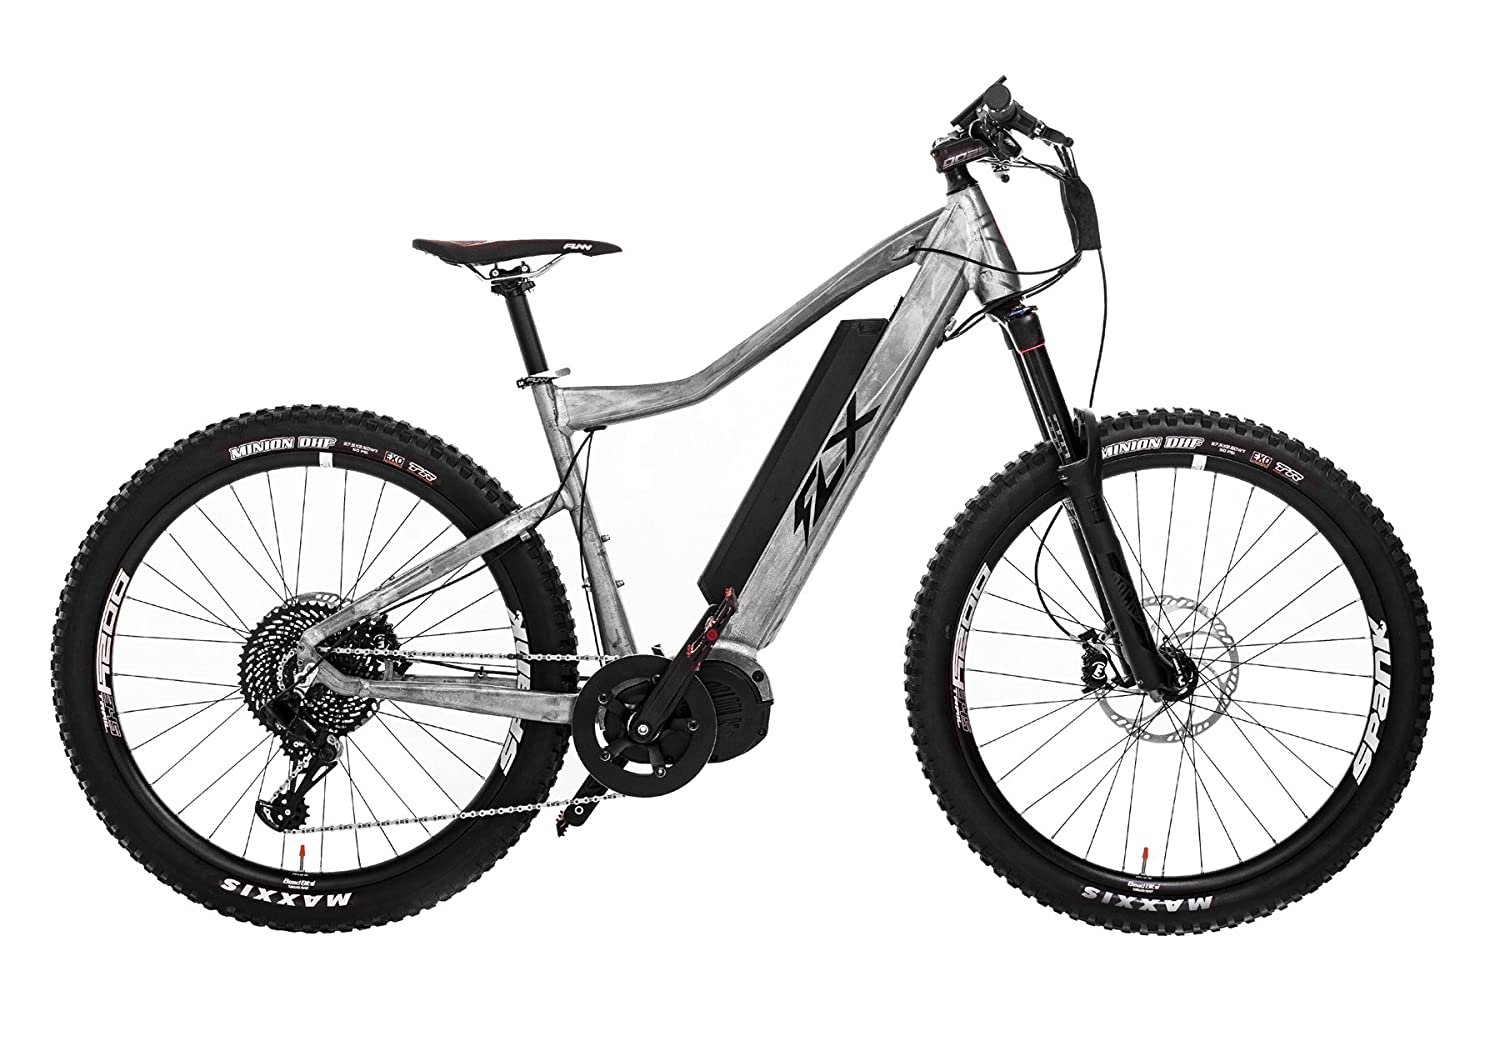 3764ee443bd Amazon.com : FLX Blade Electric Bicycle, Electric Mountainbike with  Suspension, Powerful Motor, Long-Lasting Battery, and Wide Range (Raw  Metal, ...